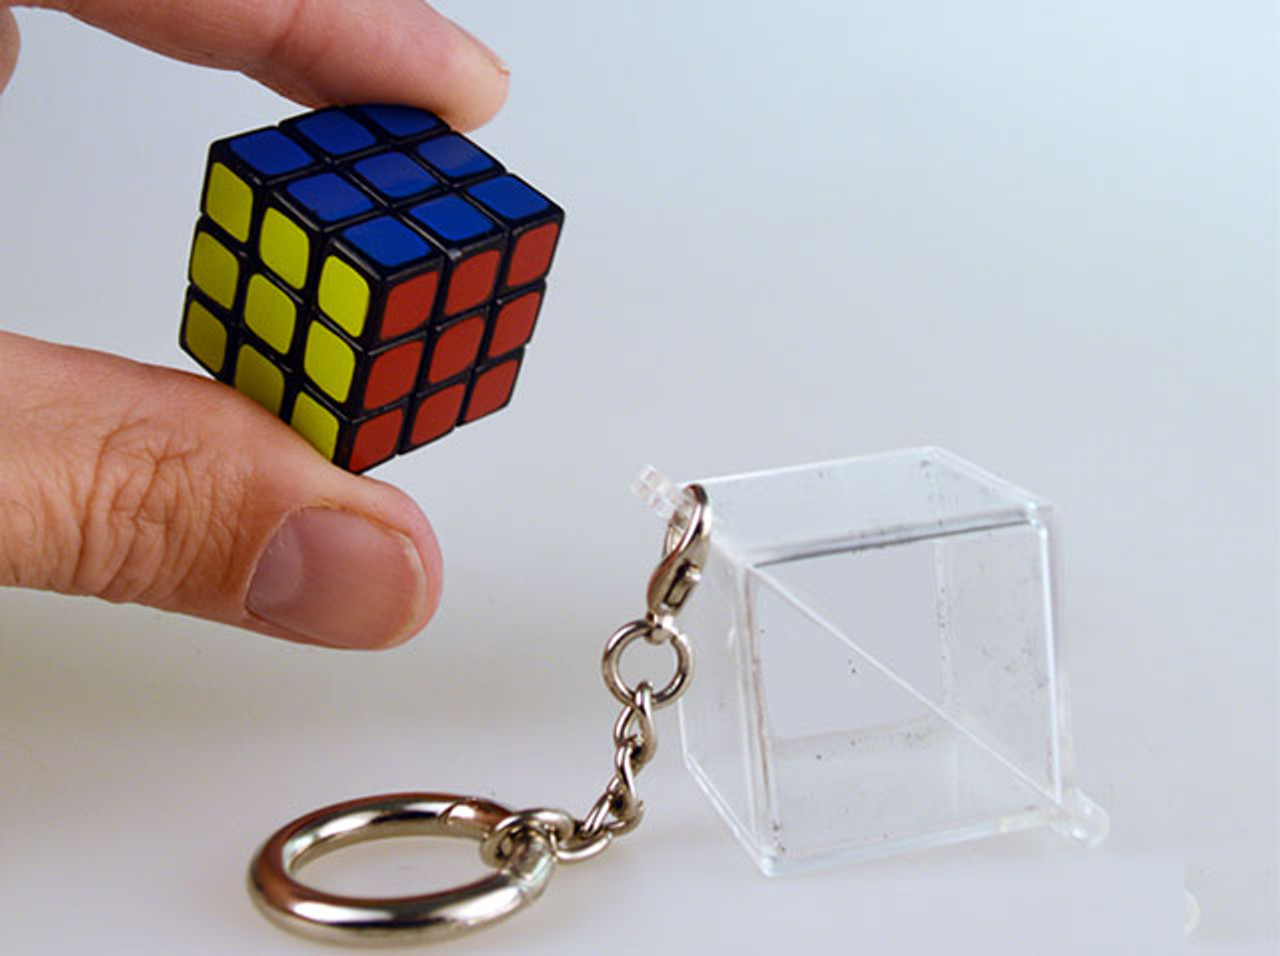 World s Smallest Rubik s Cube Keychain - Little Obsessed 6a450e75c01c